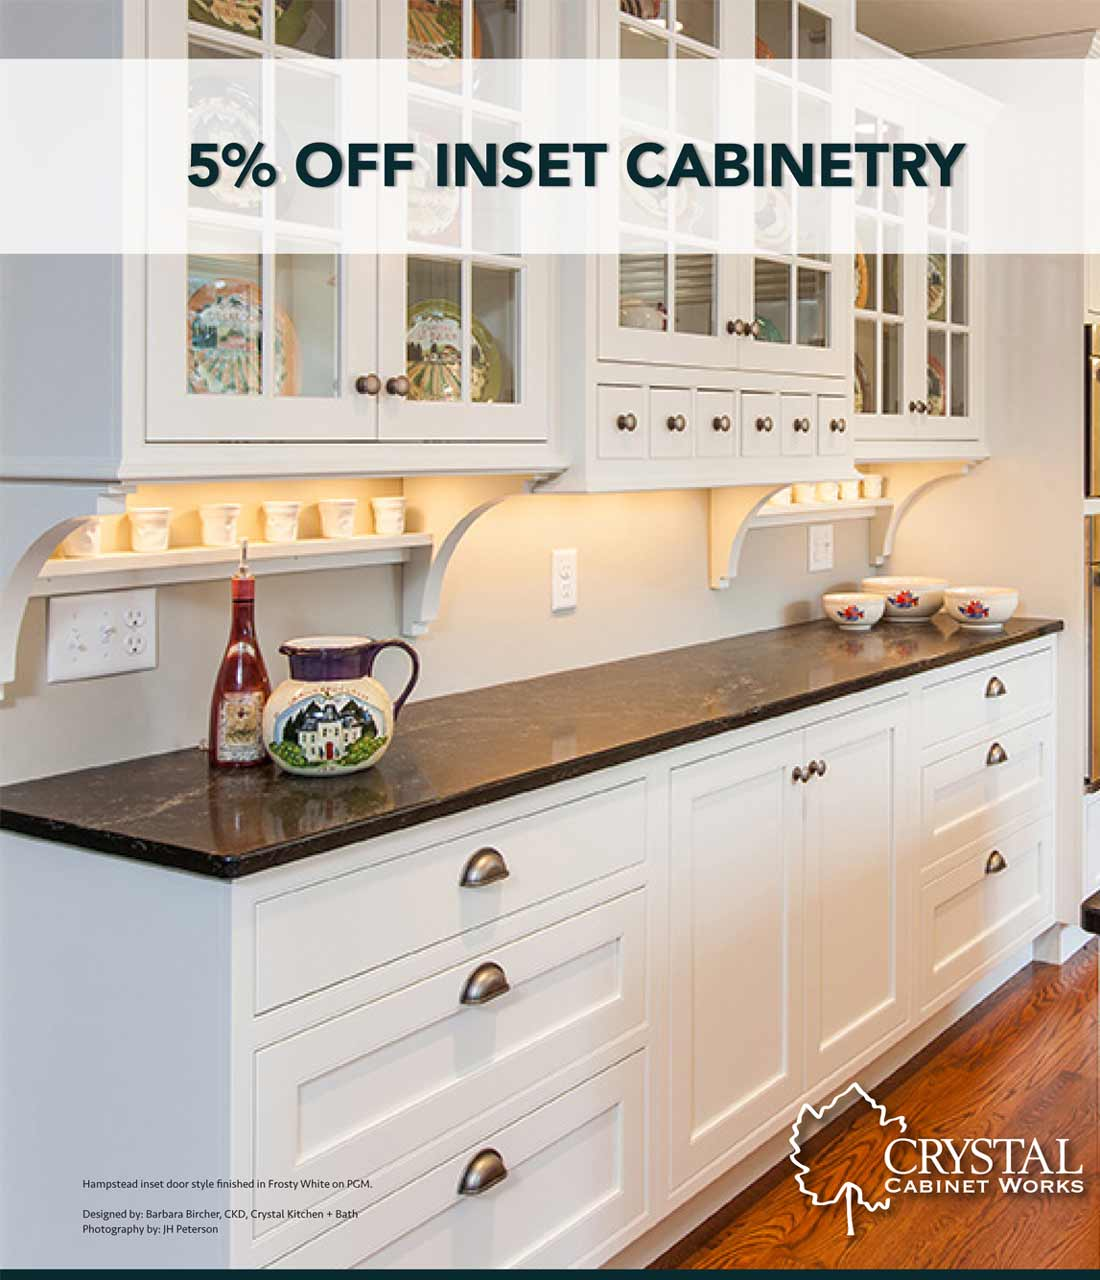 Crystal Cabinetry Promotion On Inset Cabinets Upgrades